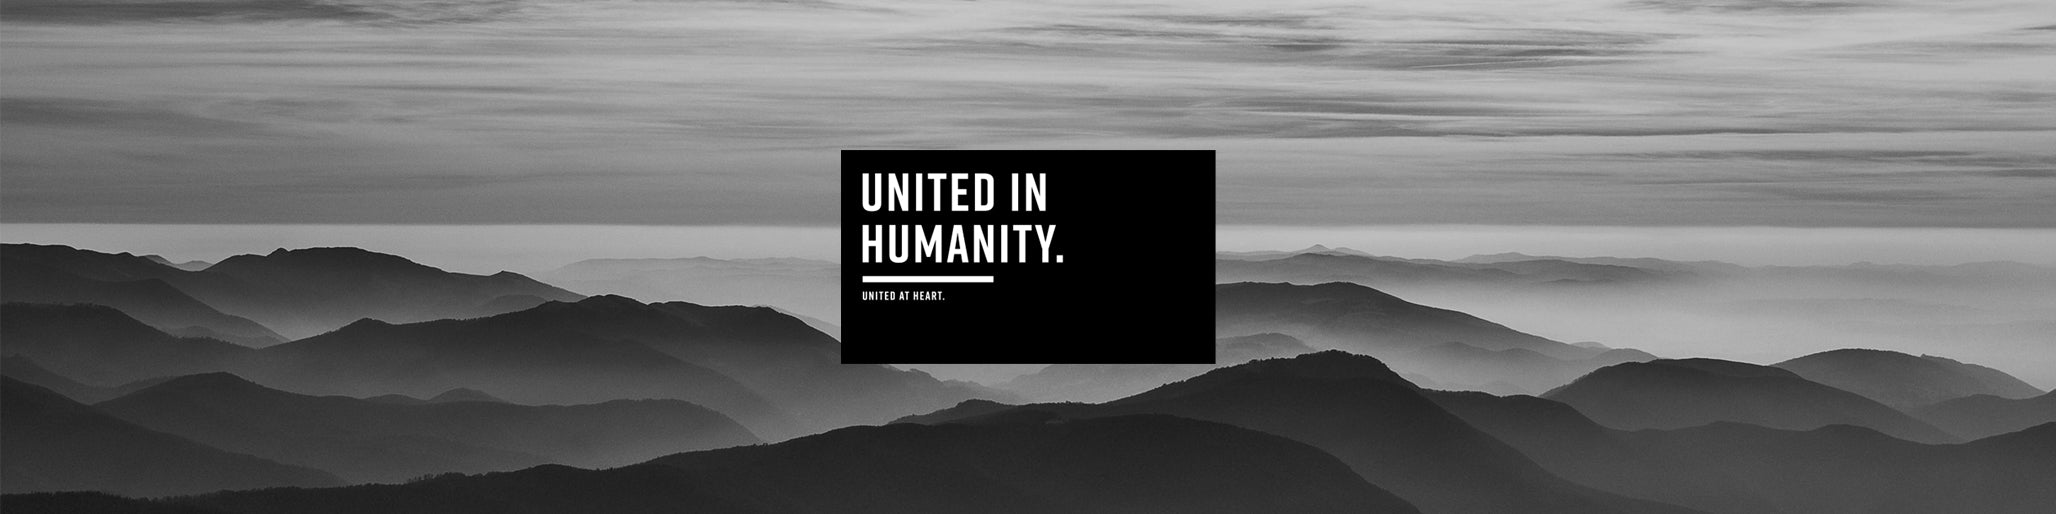 Ryzon United In Humanity Header Image